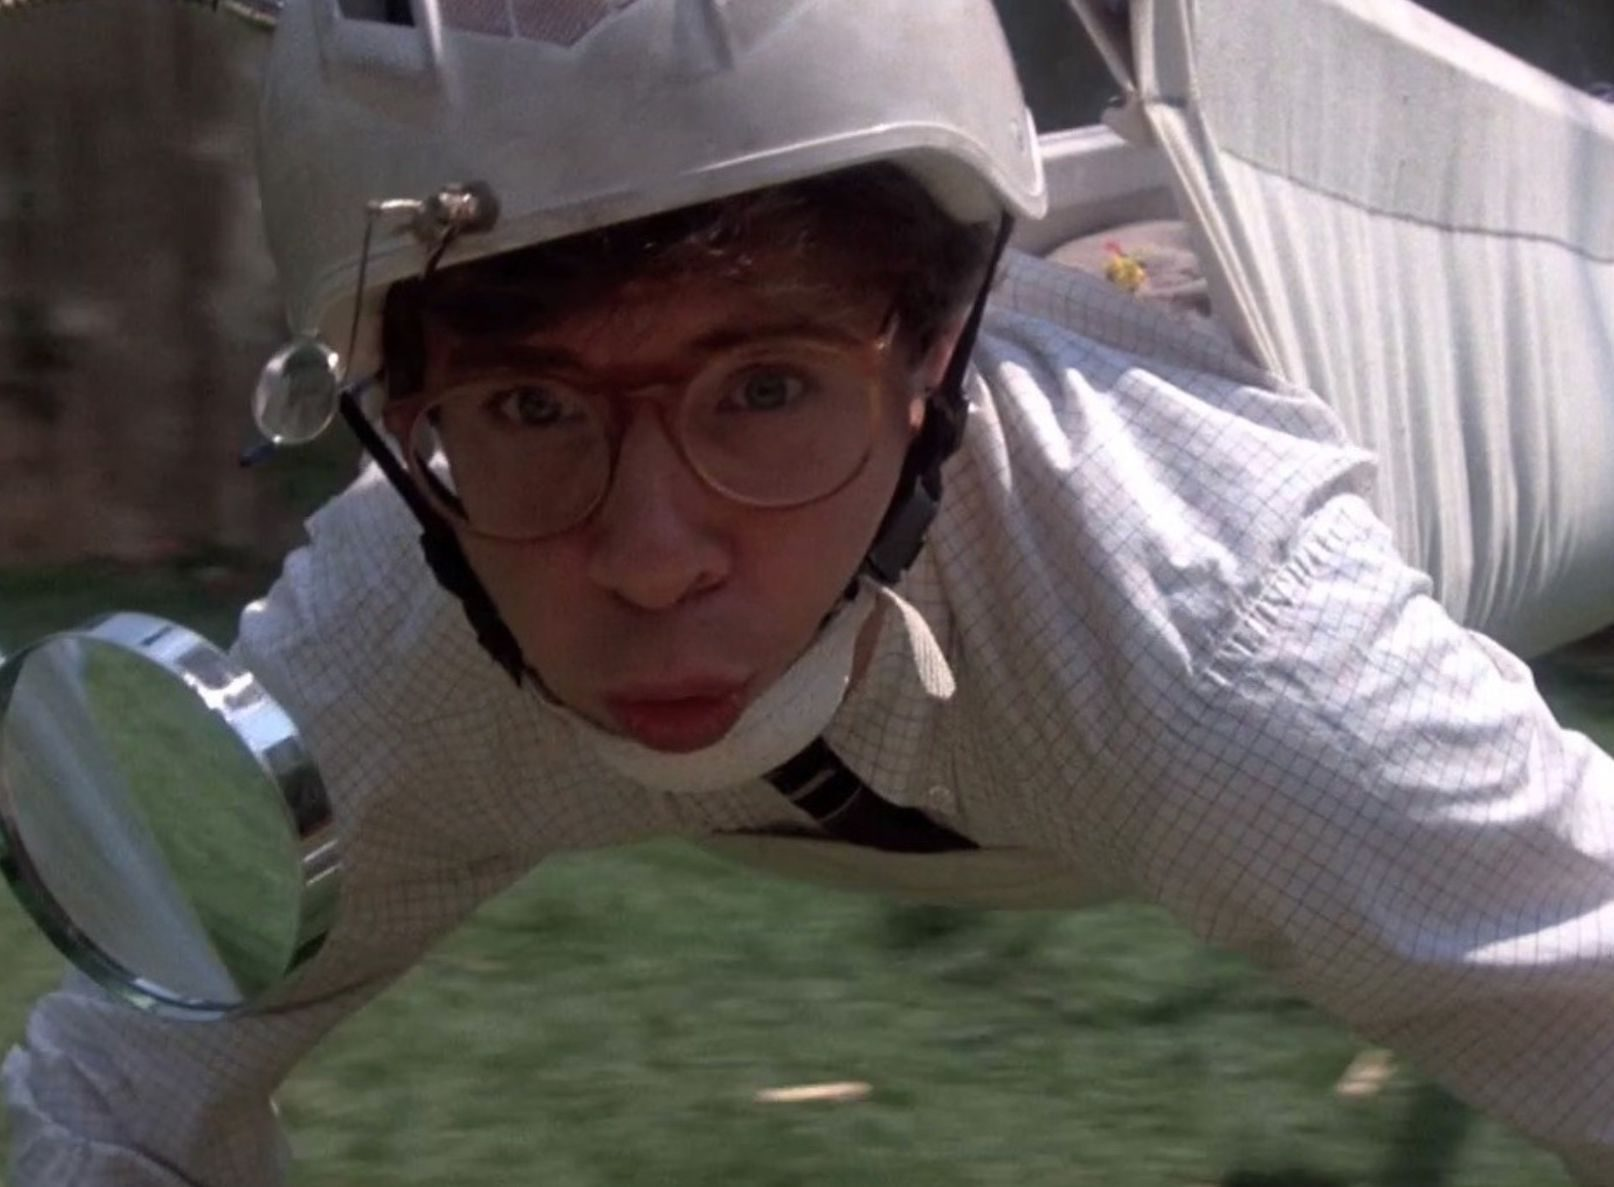 85068 walt disney home video e1619604305482 20 Things You Probably Didn't Know About Rick Moranis